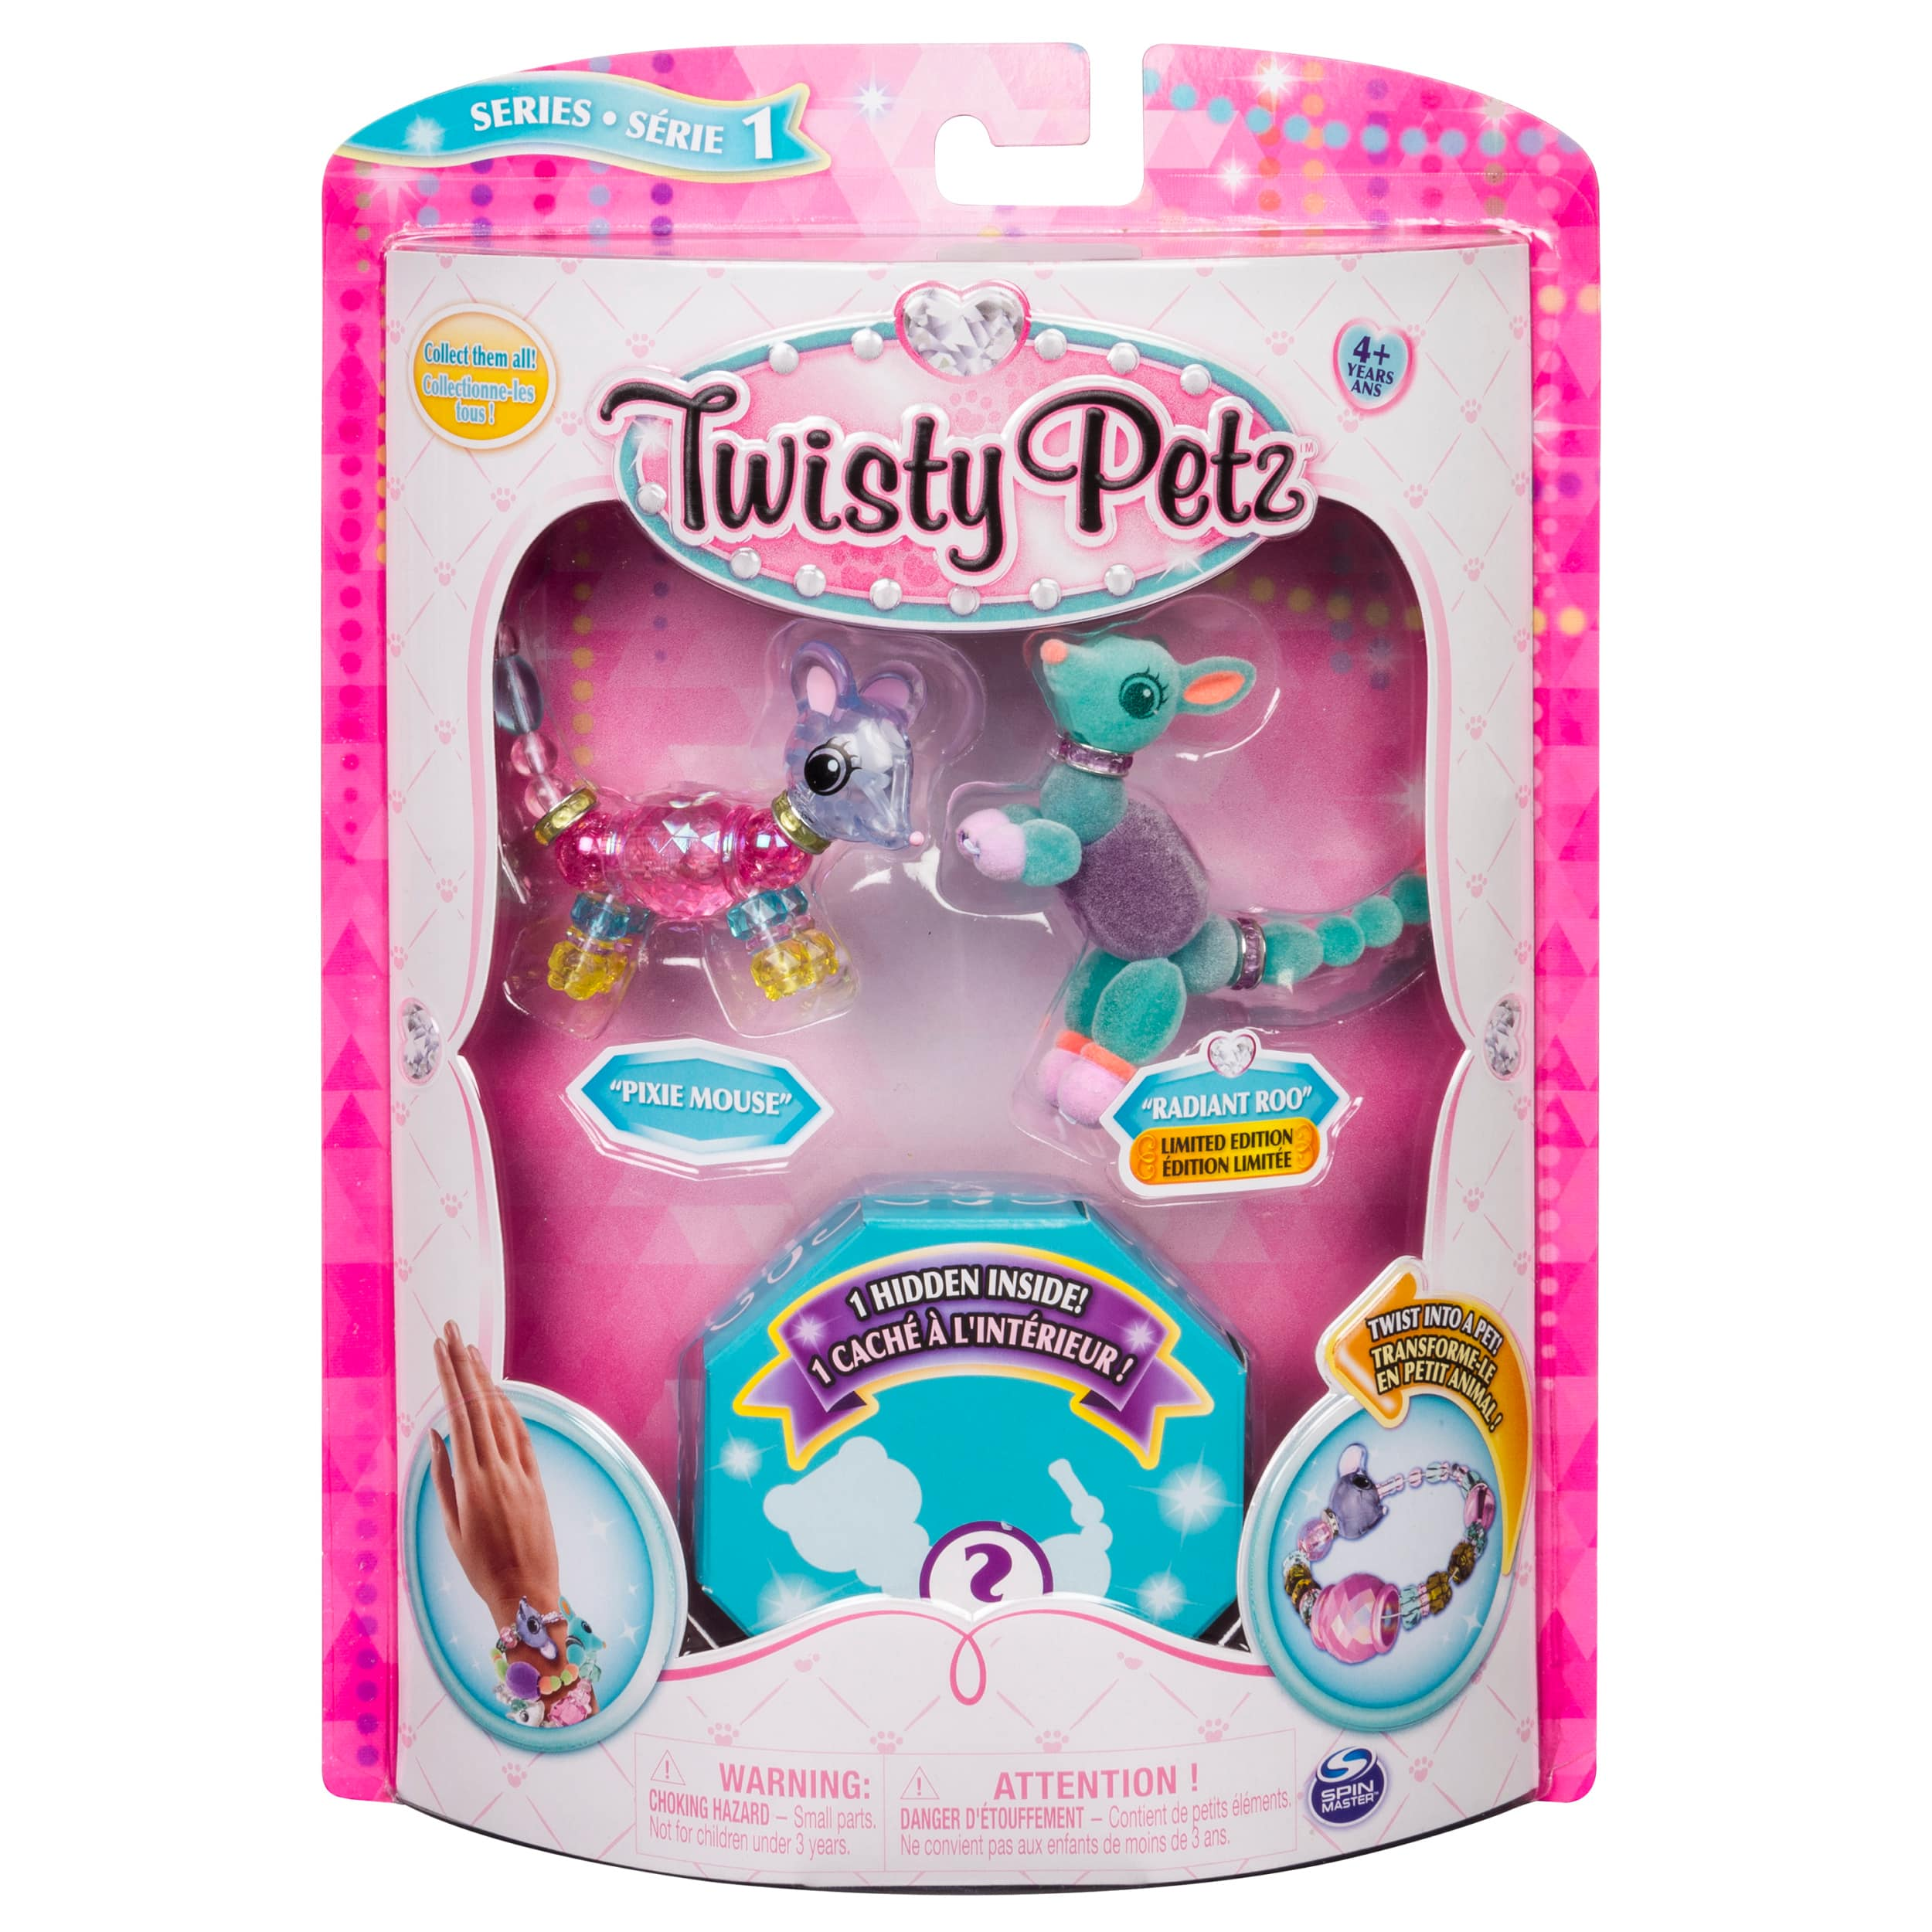 3-pack Twisty Petz Pixie Mouse, Radiant Roo and Surprise Collectible Bracelet Set $2.21 + Free ship w/ $35